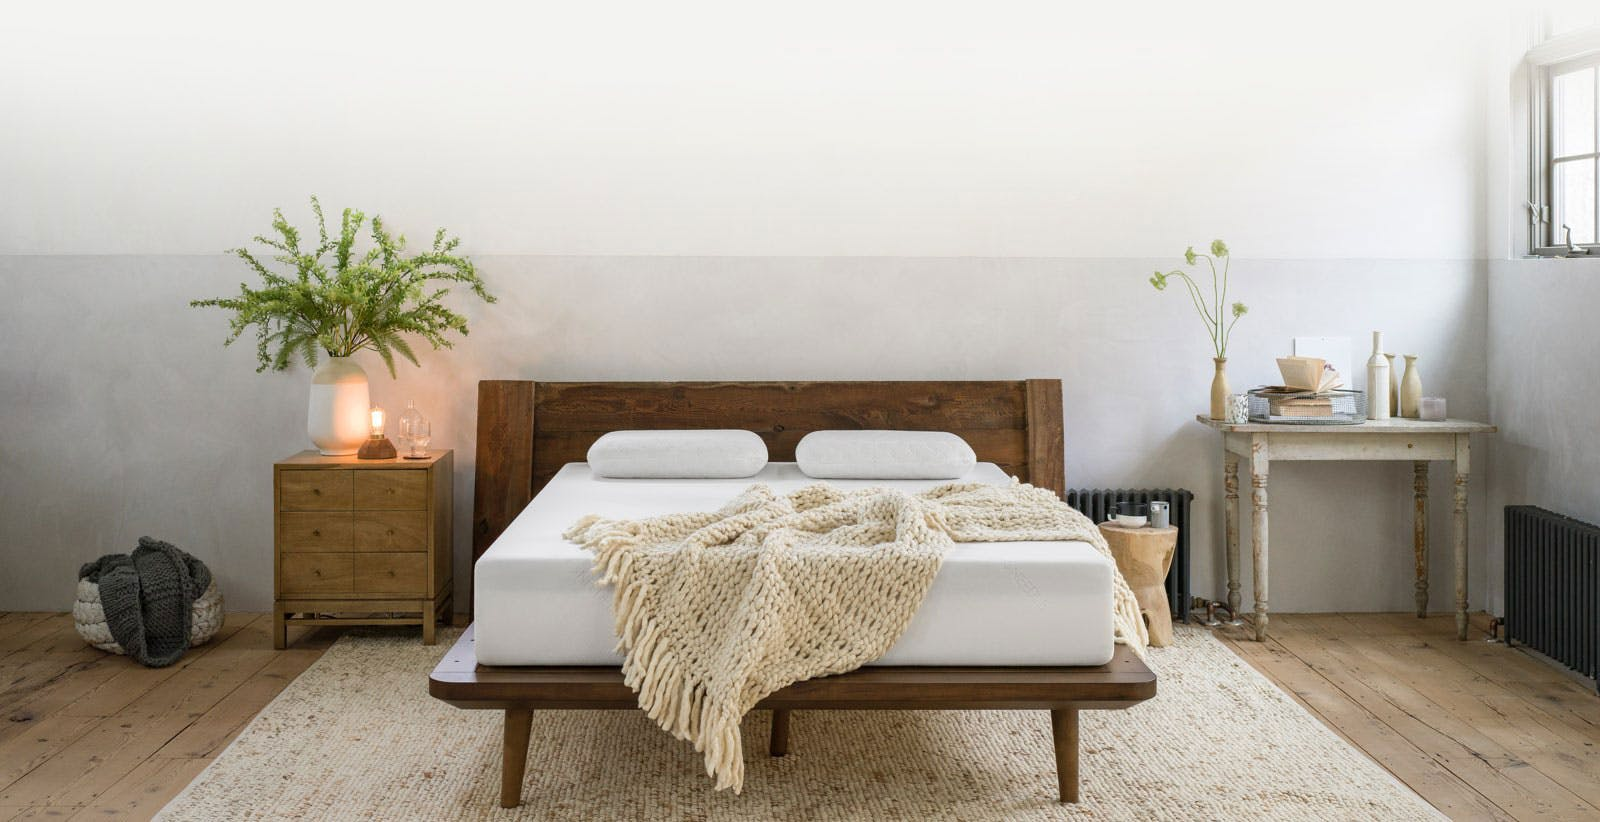 Tuft & Needle: Honest Bed Products that Reinvent Sleep